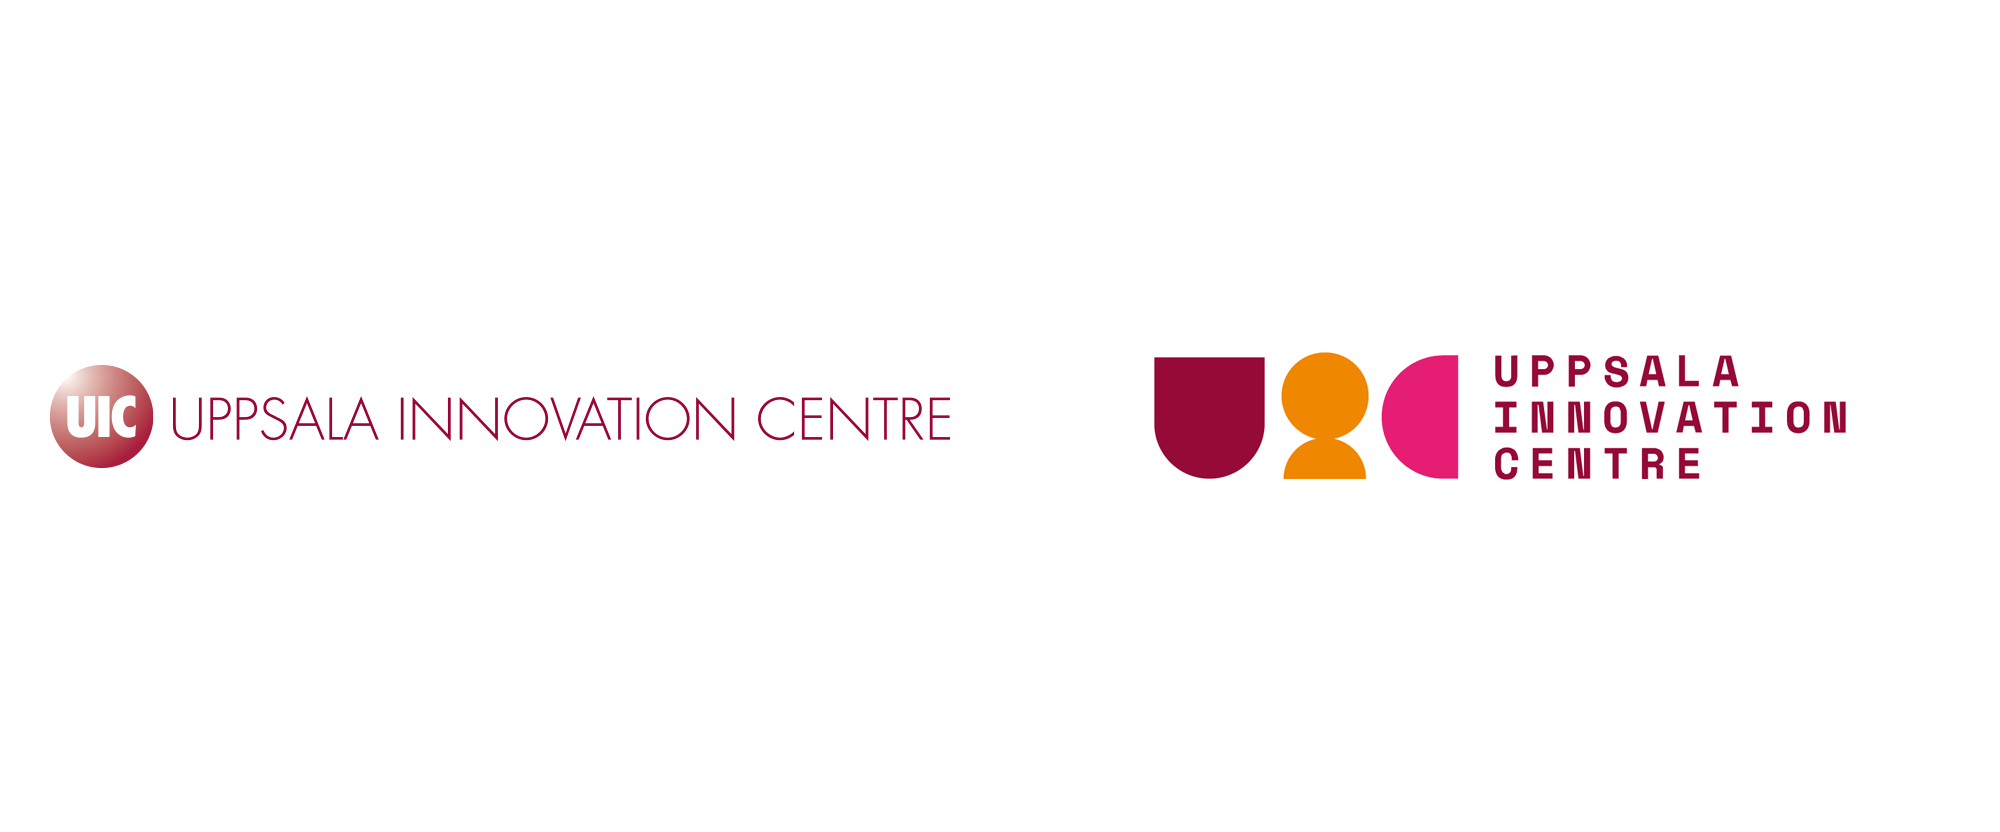 New Logo and Identity for Uppsala Innovation Centre by Jesper Holm